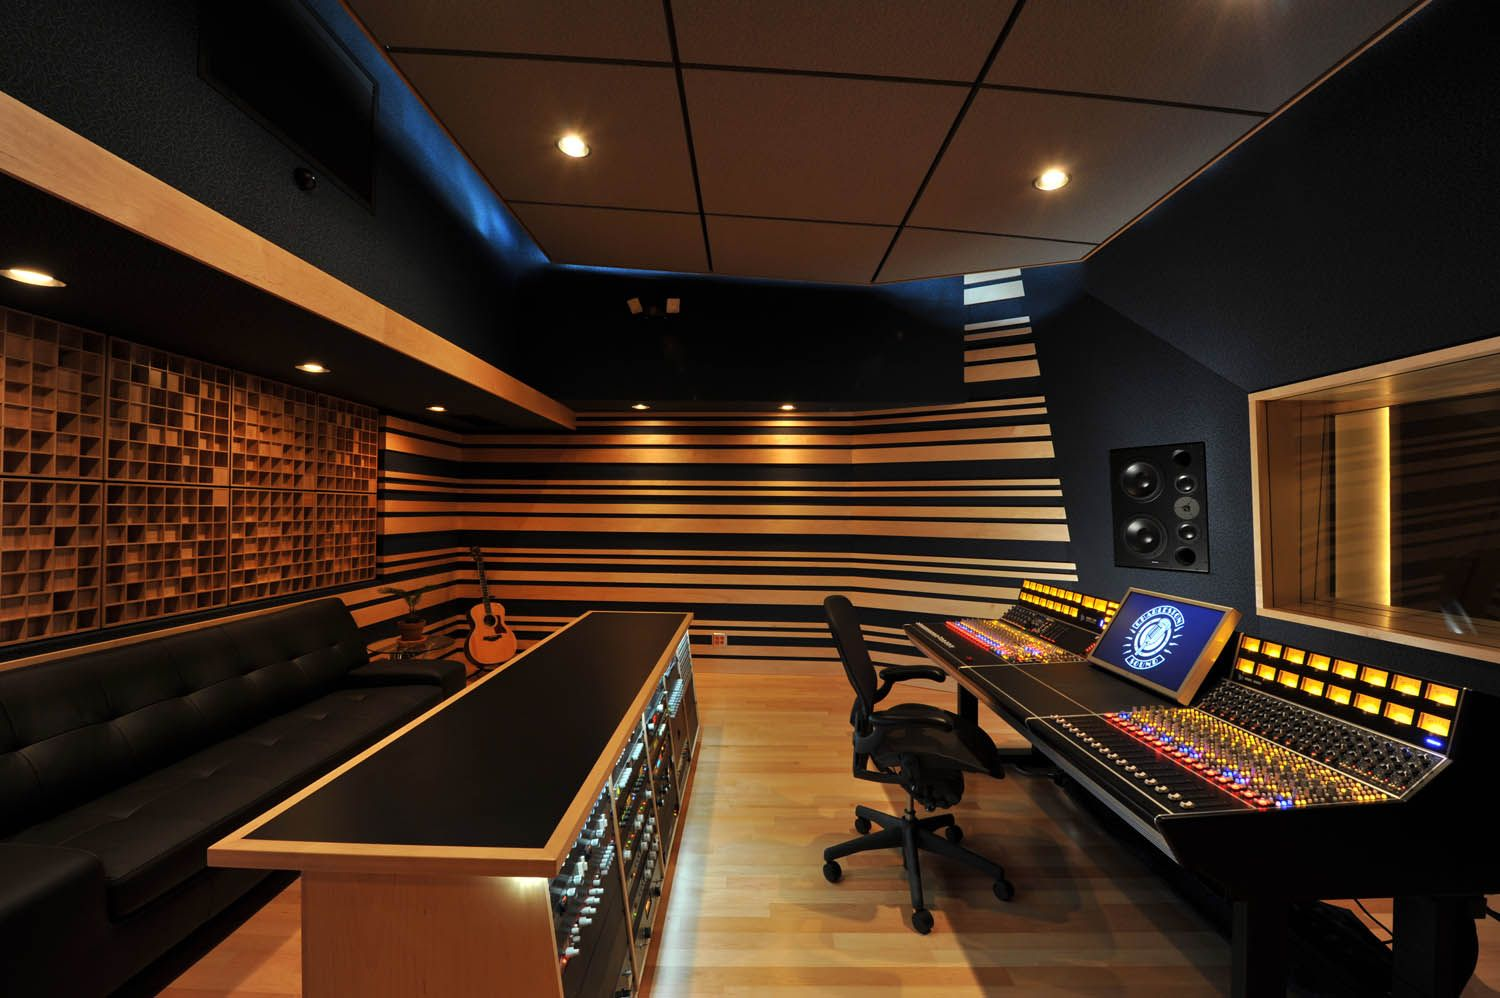 Awe Inspiring 17 Best Ideas About Recording Studio Design On Pinterest Largest Home Design Picture Inspirations Pitcheantrous